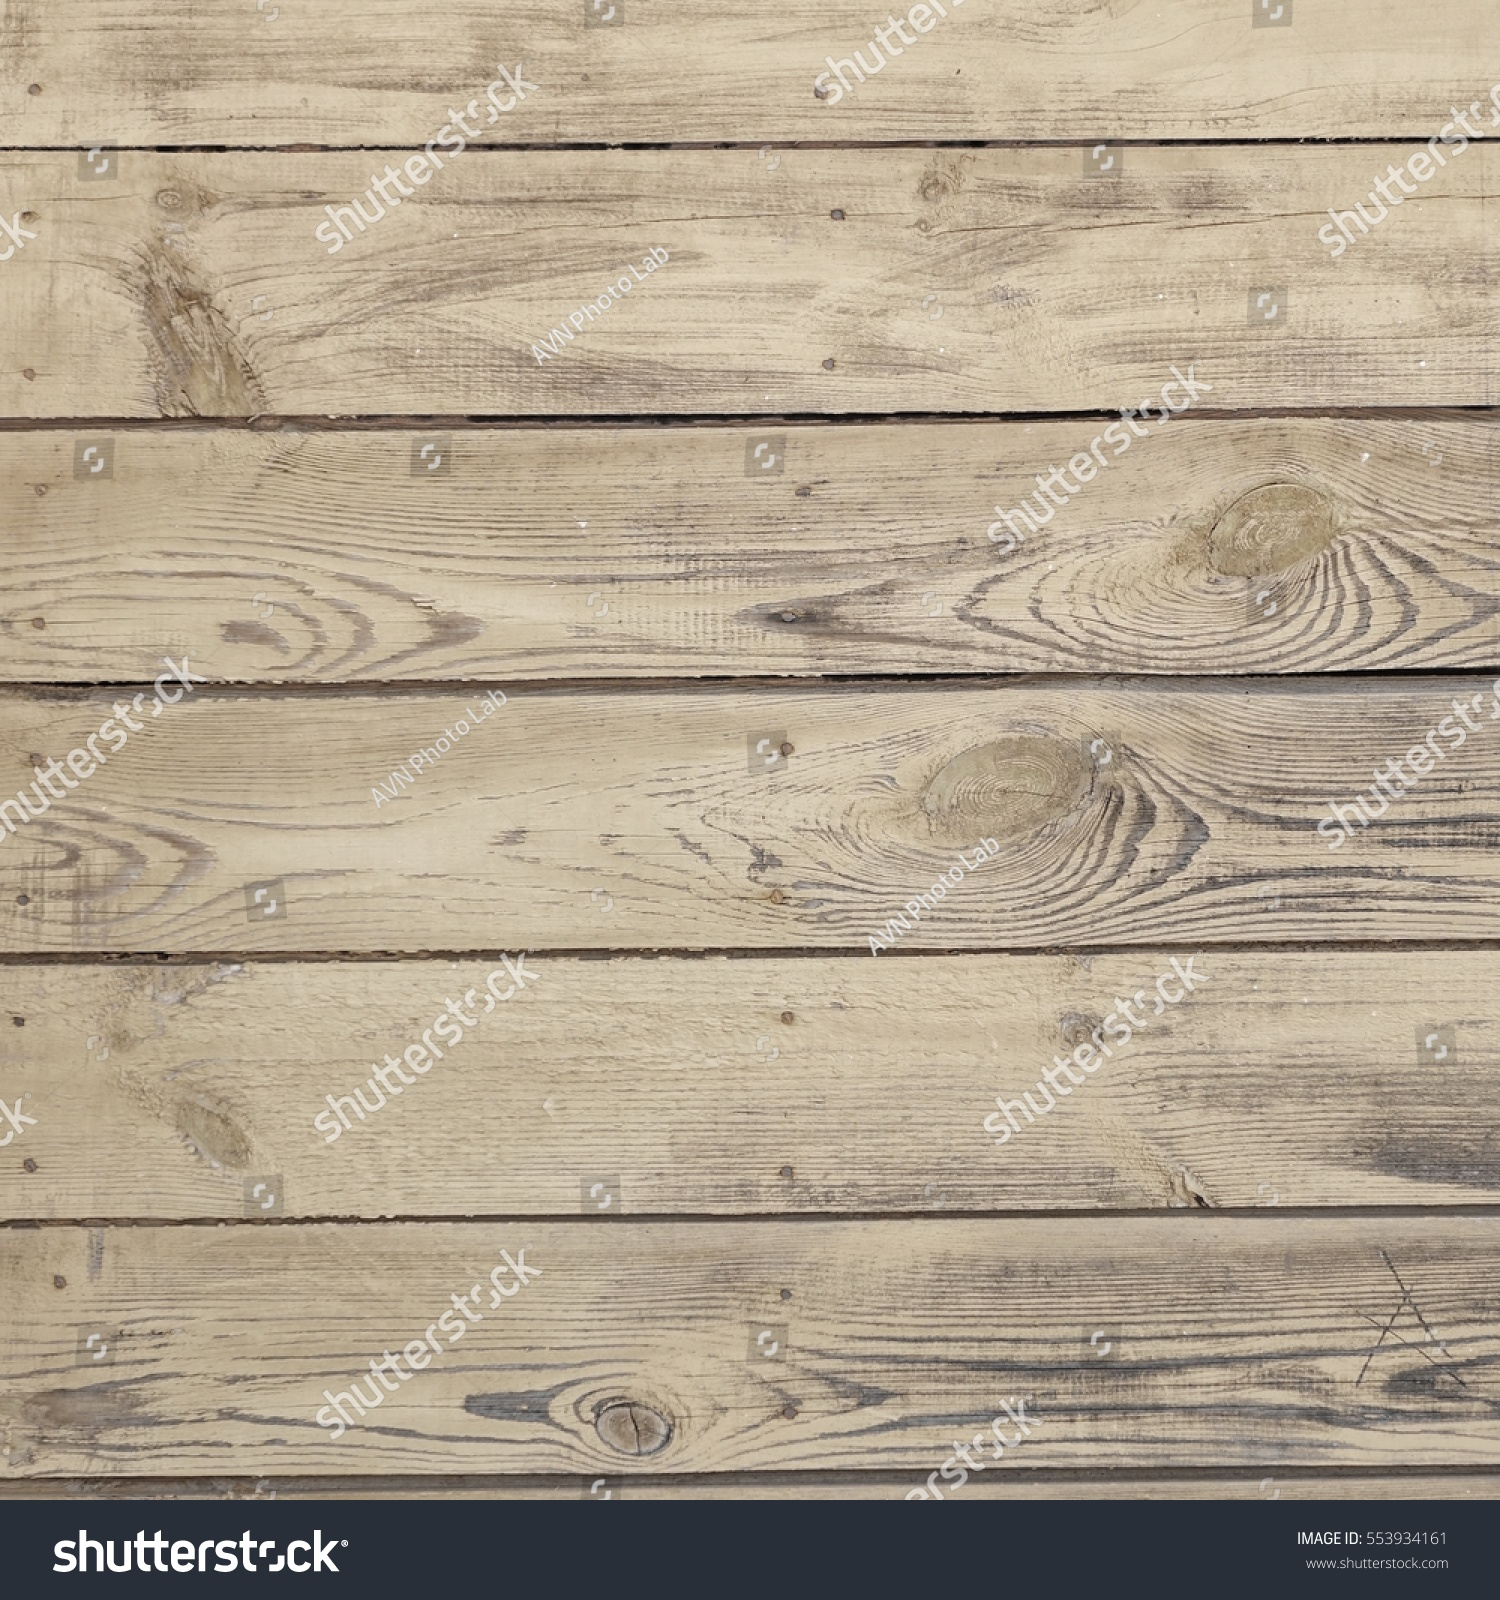 Old Barn Wood Square Background Grey Wooden Frame Texture Rustic Barnwood Isolated White Interior